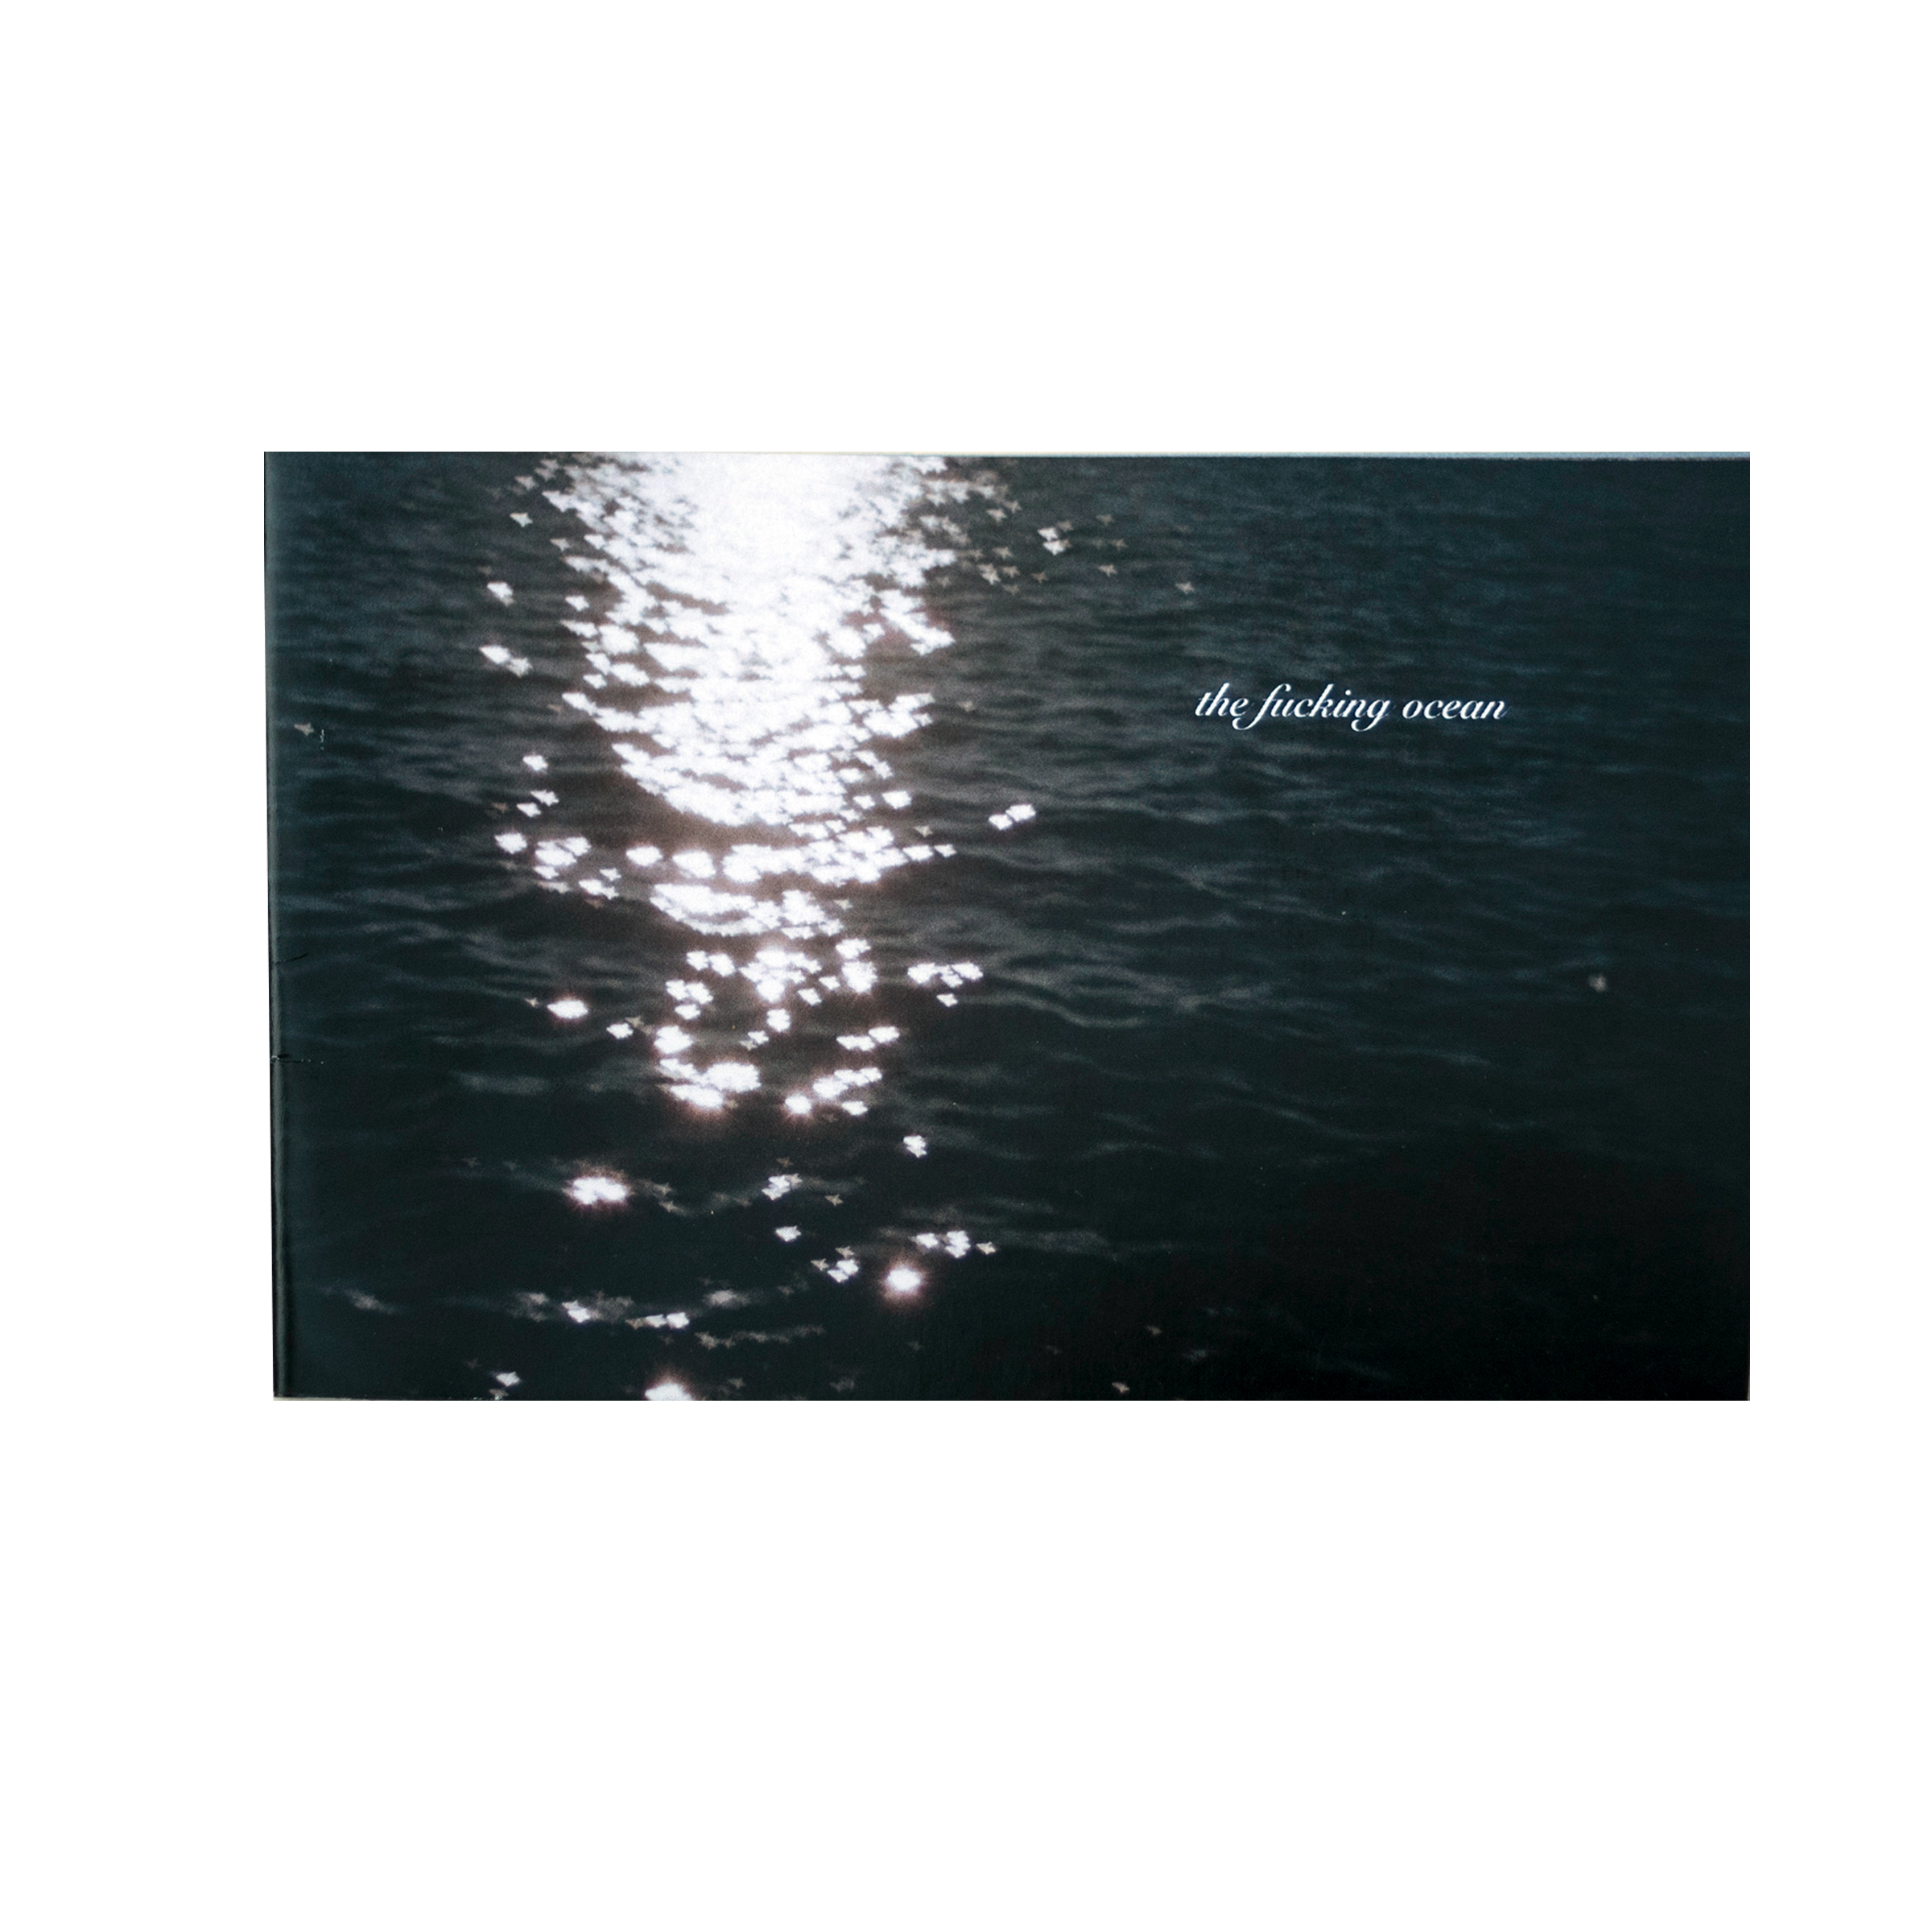 The Fucking Ocean pt. 1  $15 (U.S. shipping included)